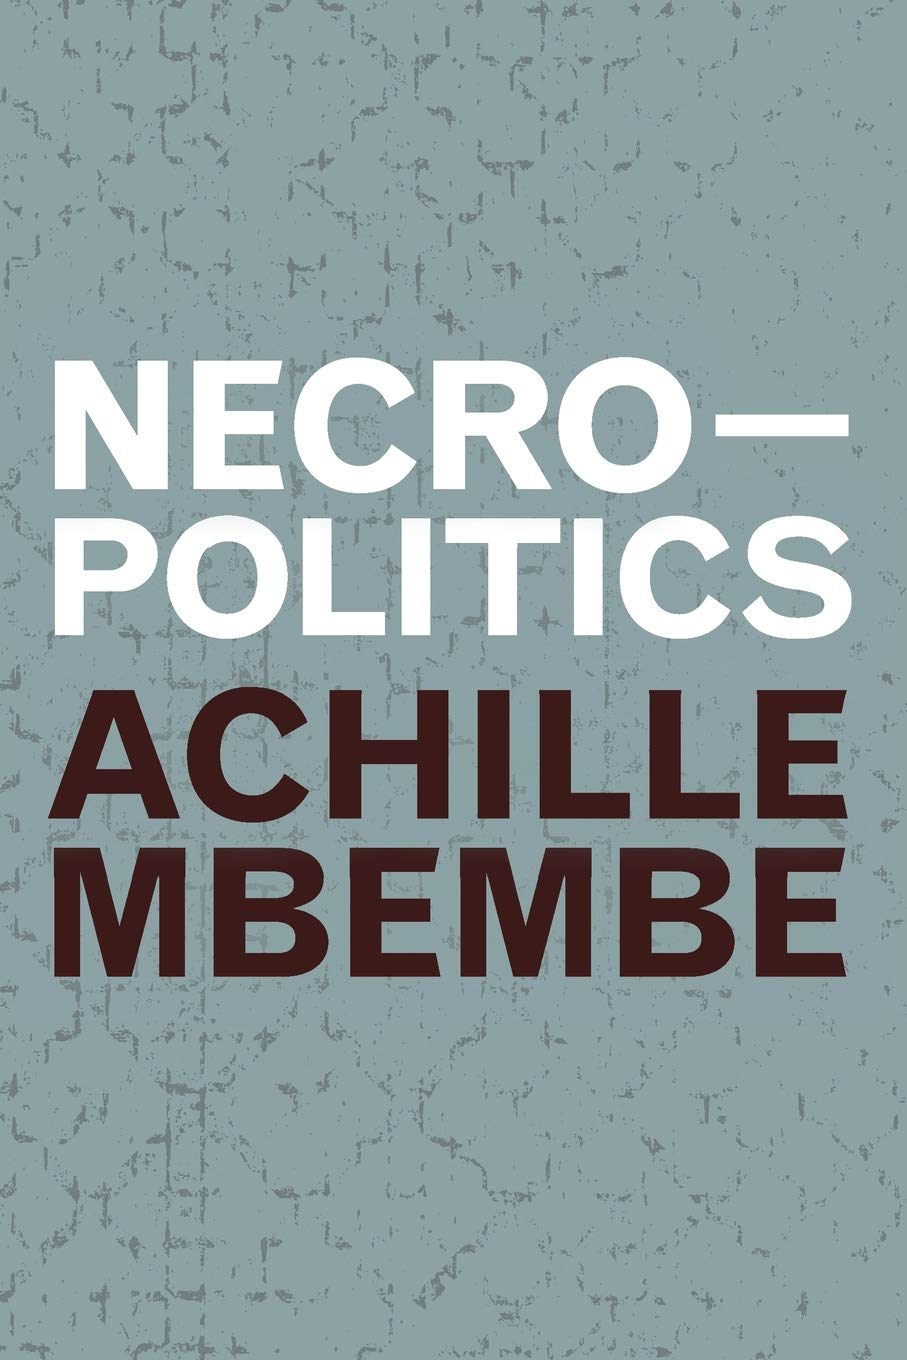 Necropolitics (Theory in Forms): Mbembe, Achille: 9781478006510:  Amazon.com: Books